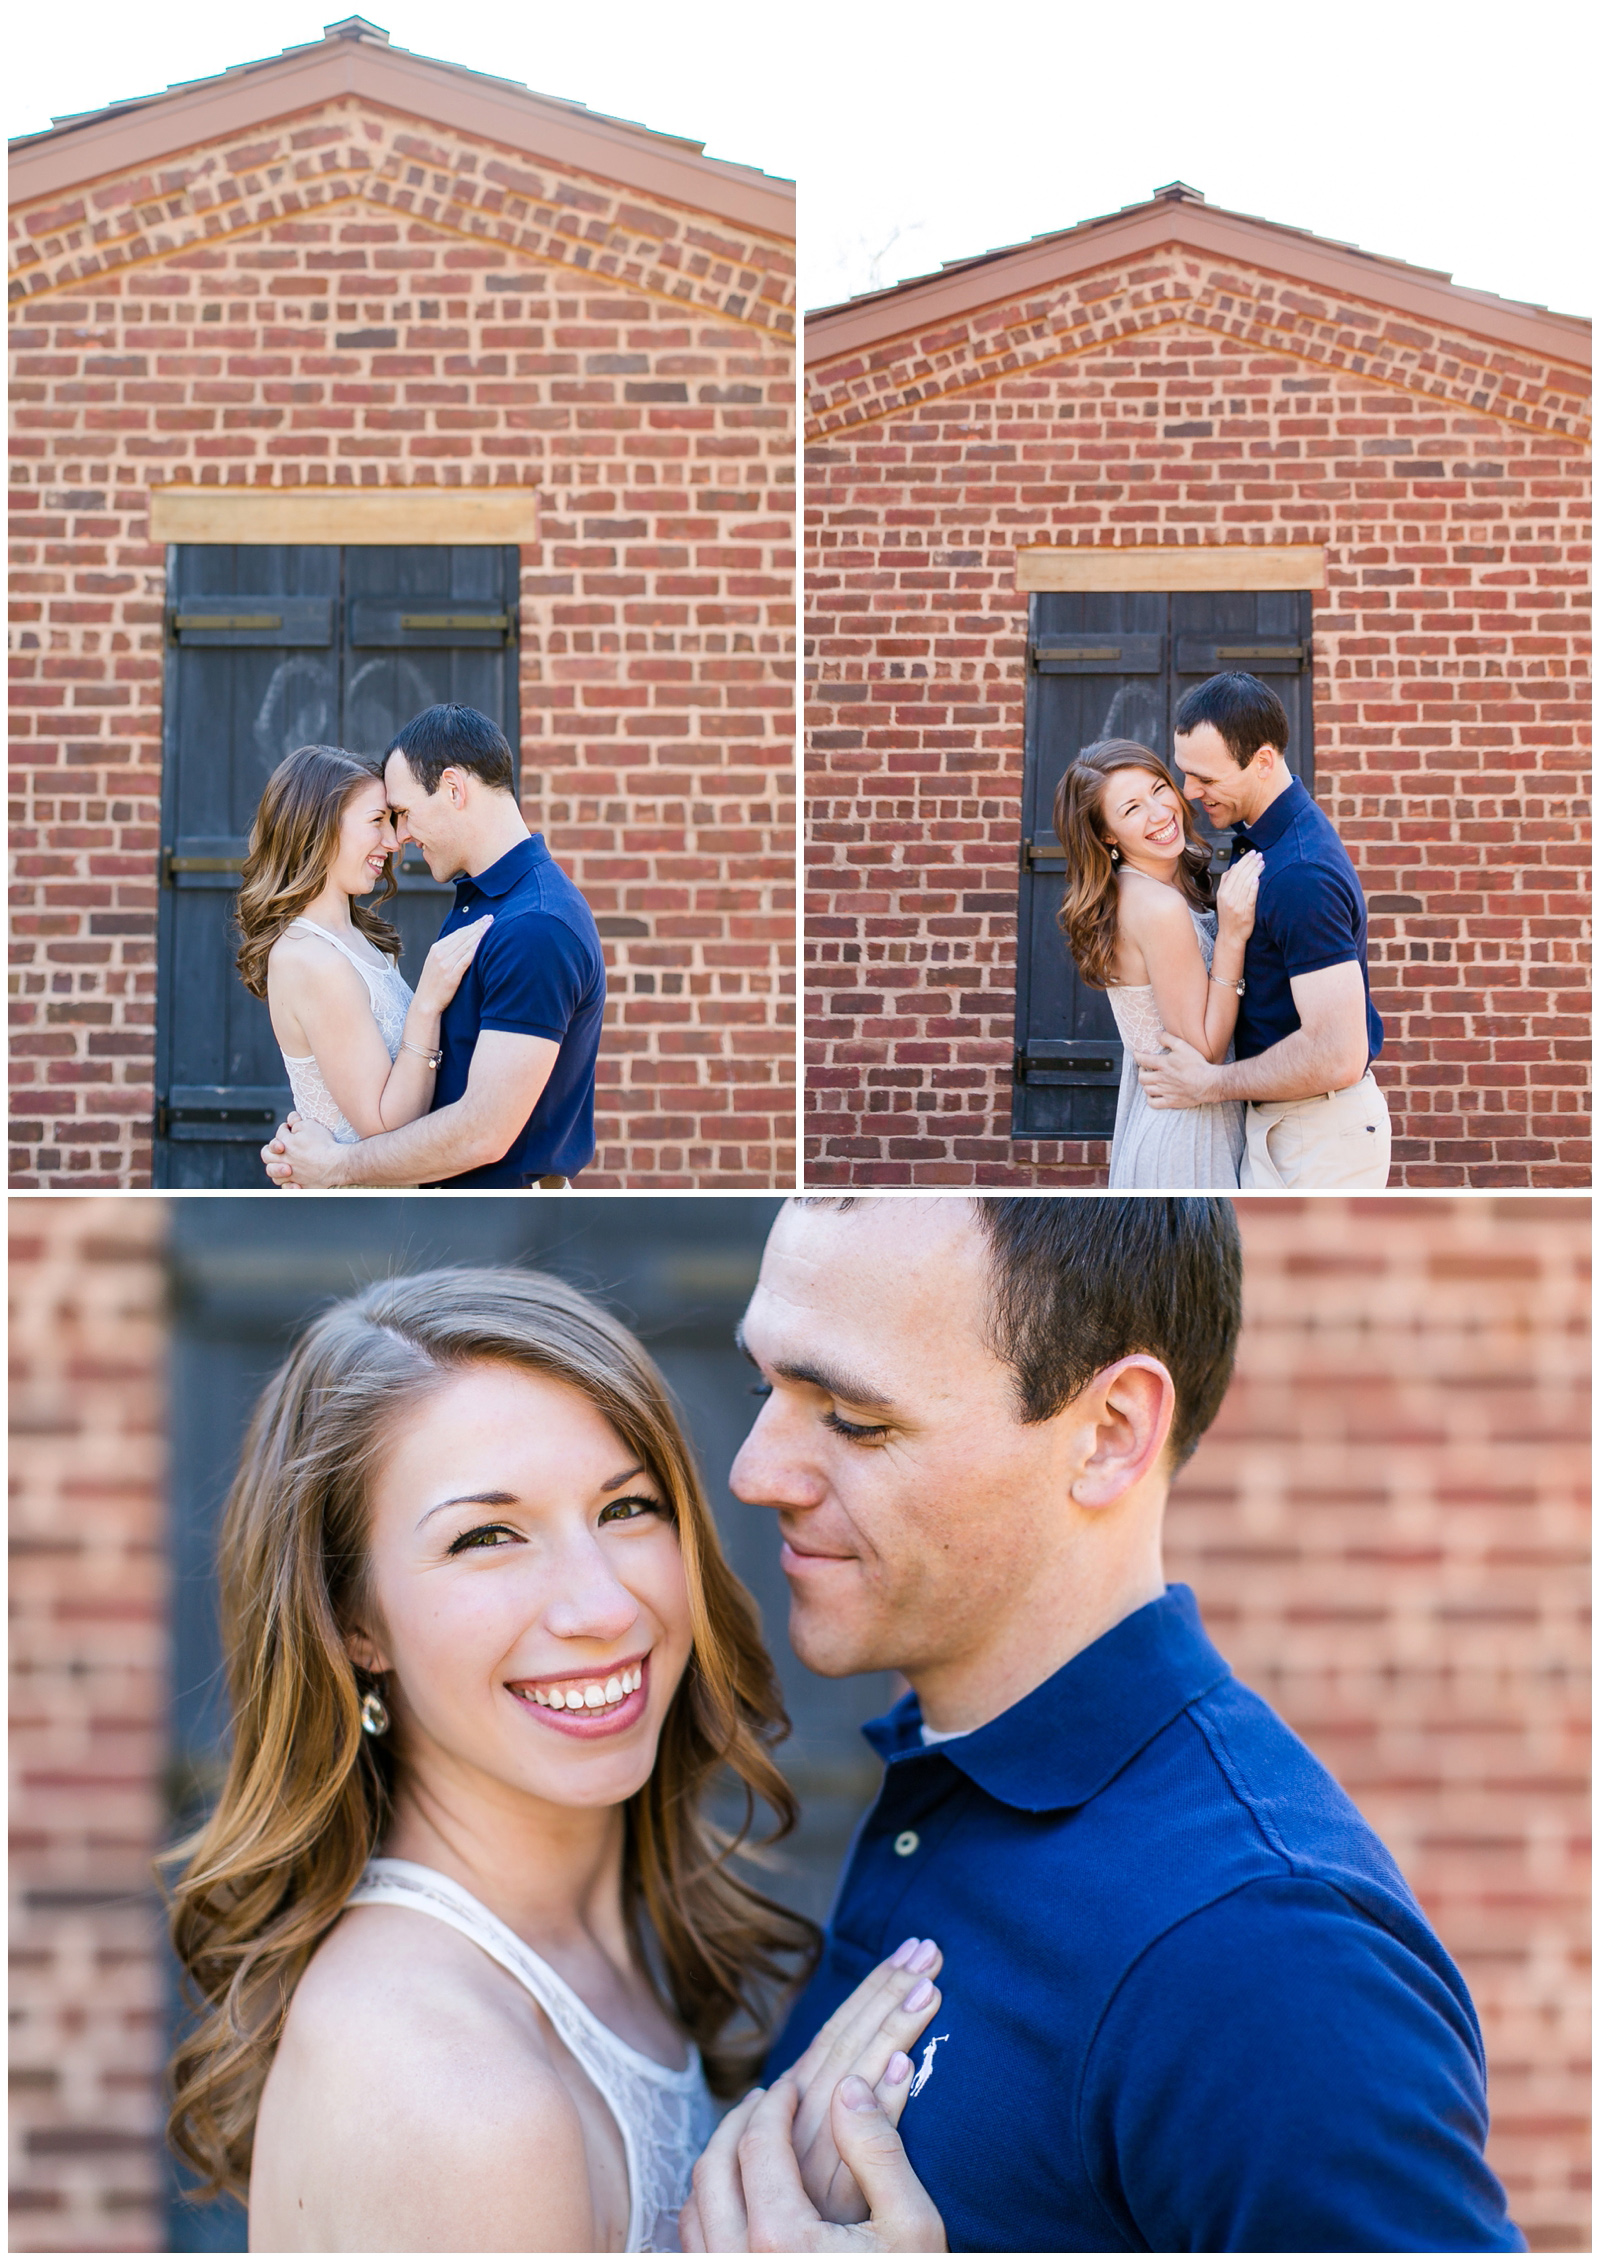 ArdentStoryHannahDavidEngaged_AtlantaEngagement_0009